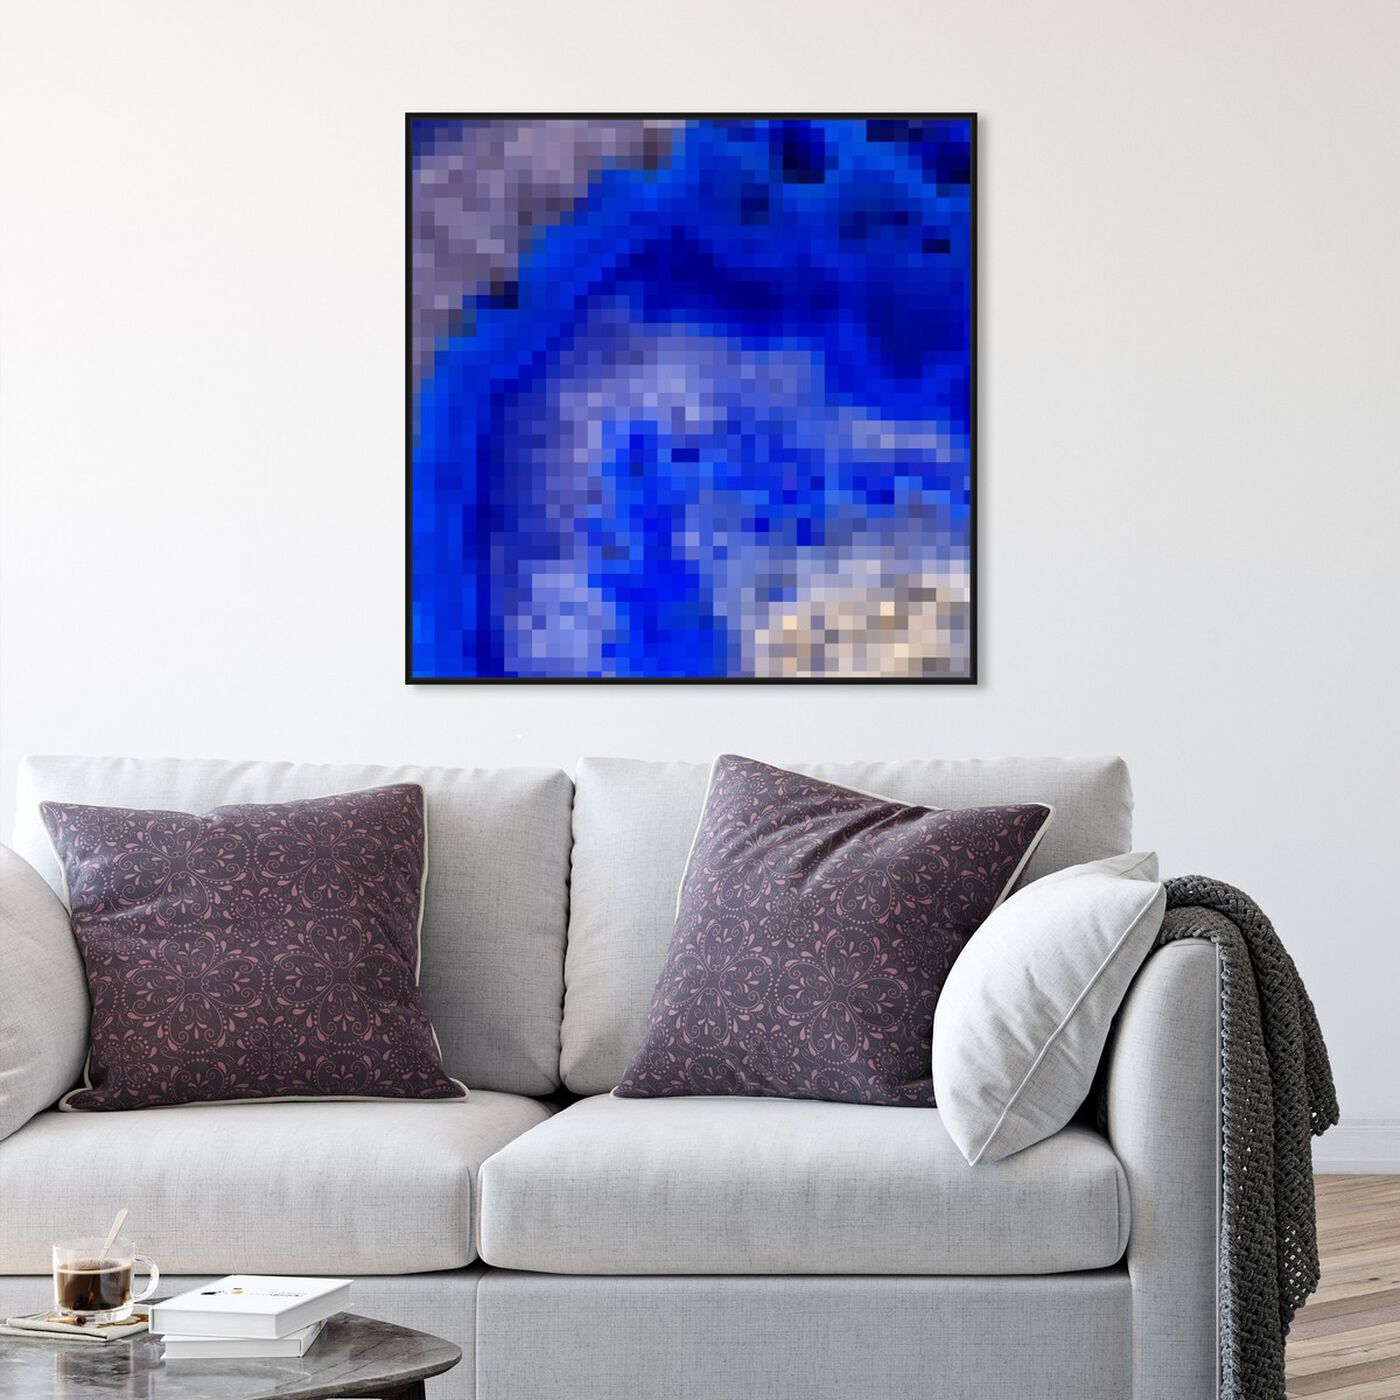 Hanging view of Agate Pixel featuring abstract and crystals art.